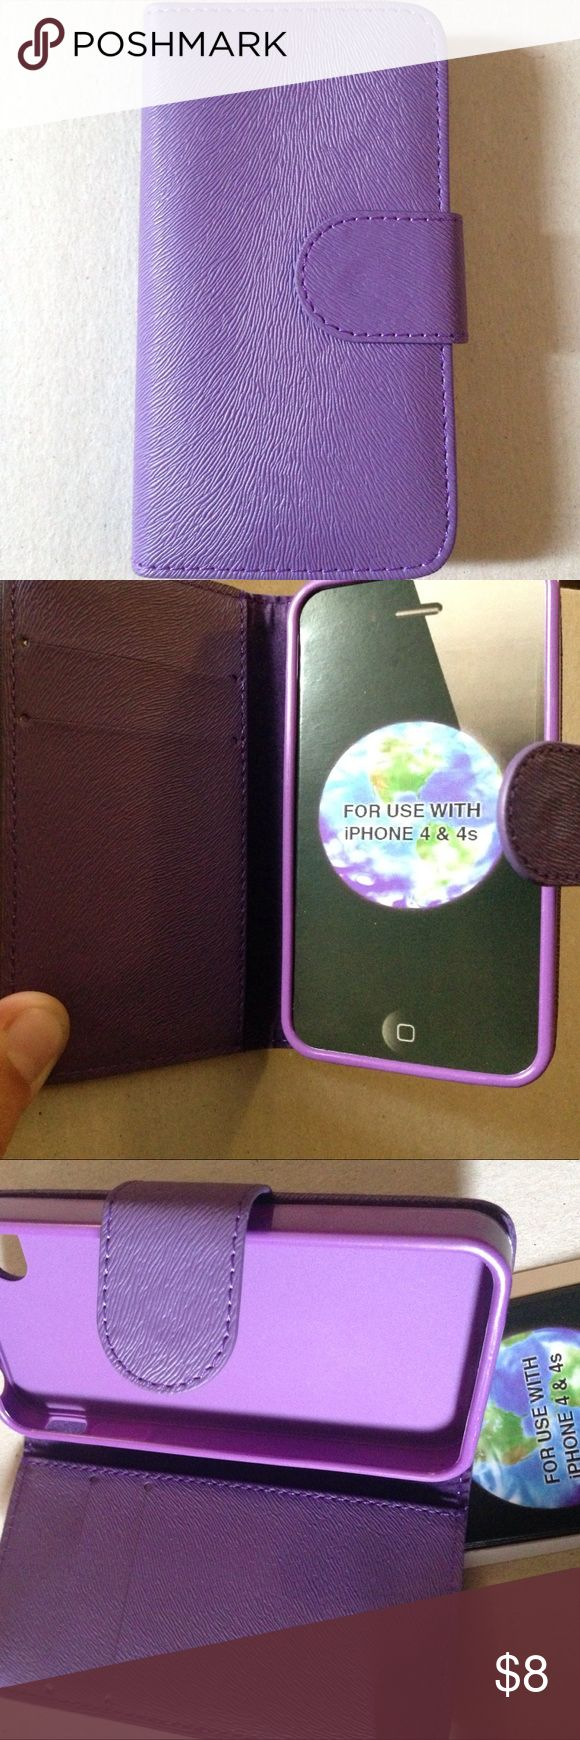 iPhone 4 & 4S wallet case with magnetic closure. BNWOT purple zebra textured magnetic closing wallet and phone case. Fits iPhone 4 & 4S. These are very convenient and stylish. I will never go back to a regular phone case after using one like this. Accessories Phone Cases